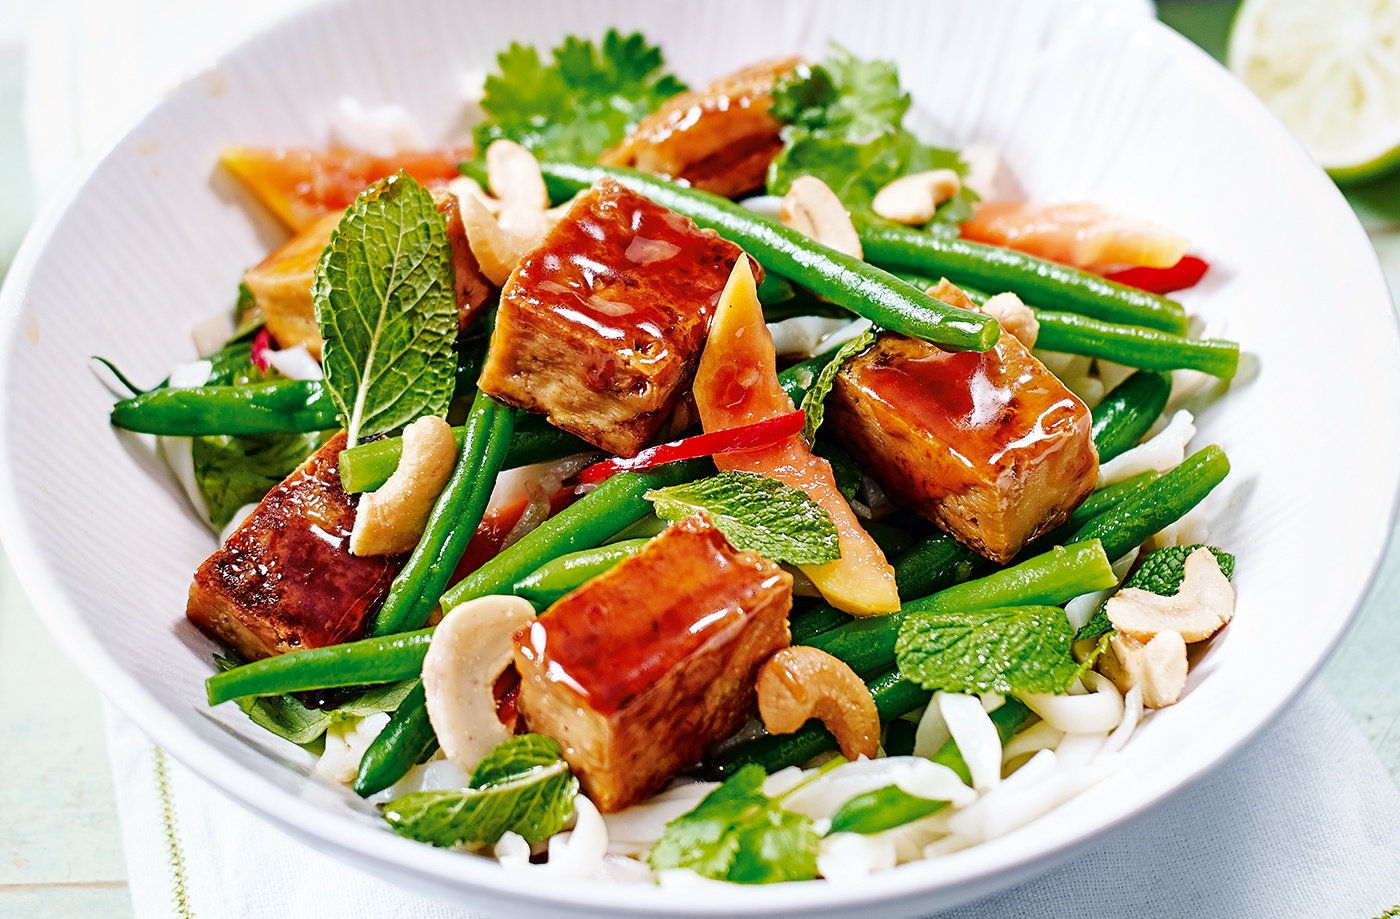 Sticky tofu and papaya salad dinner ideas for two for Salas ideas